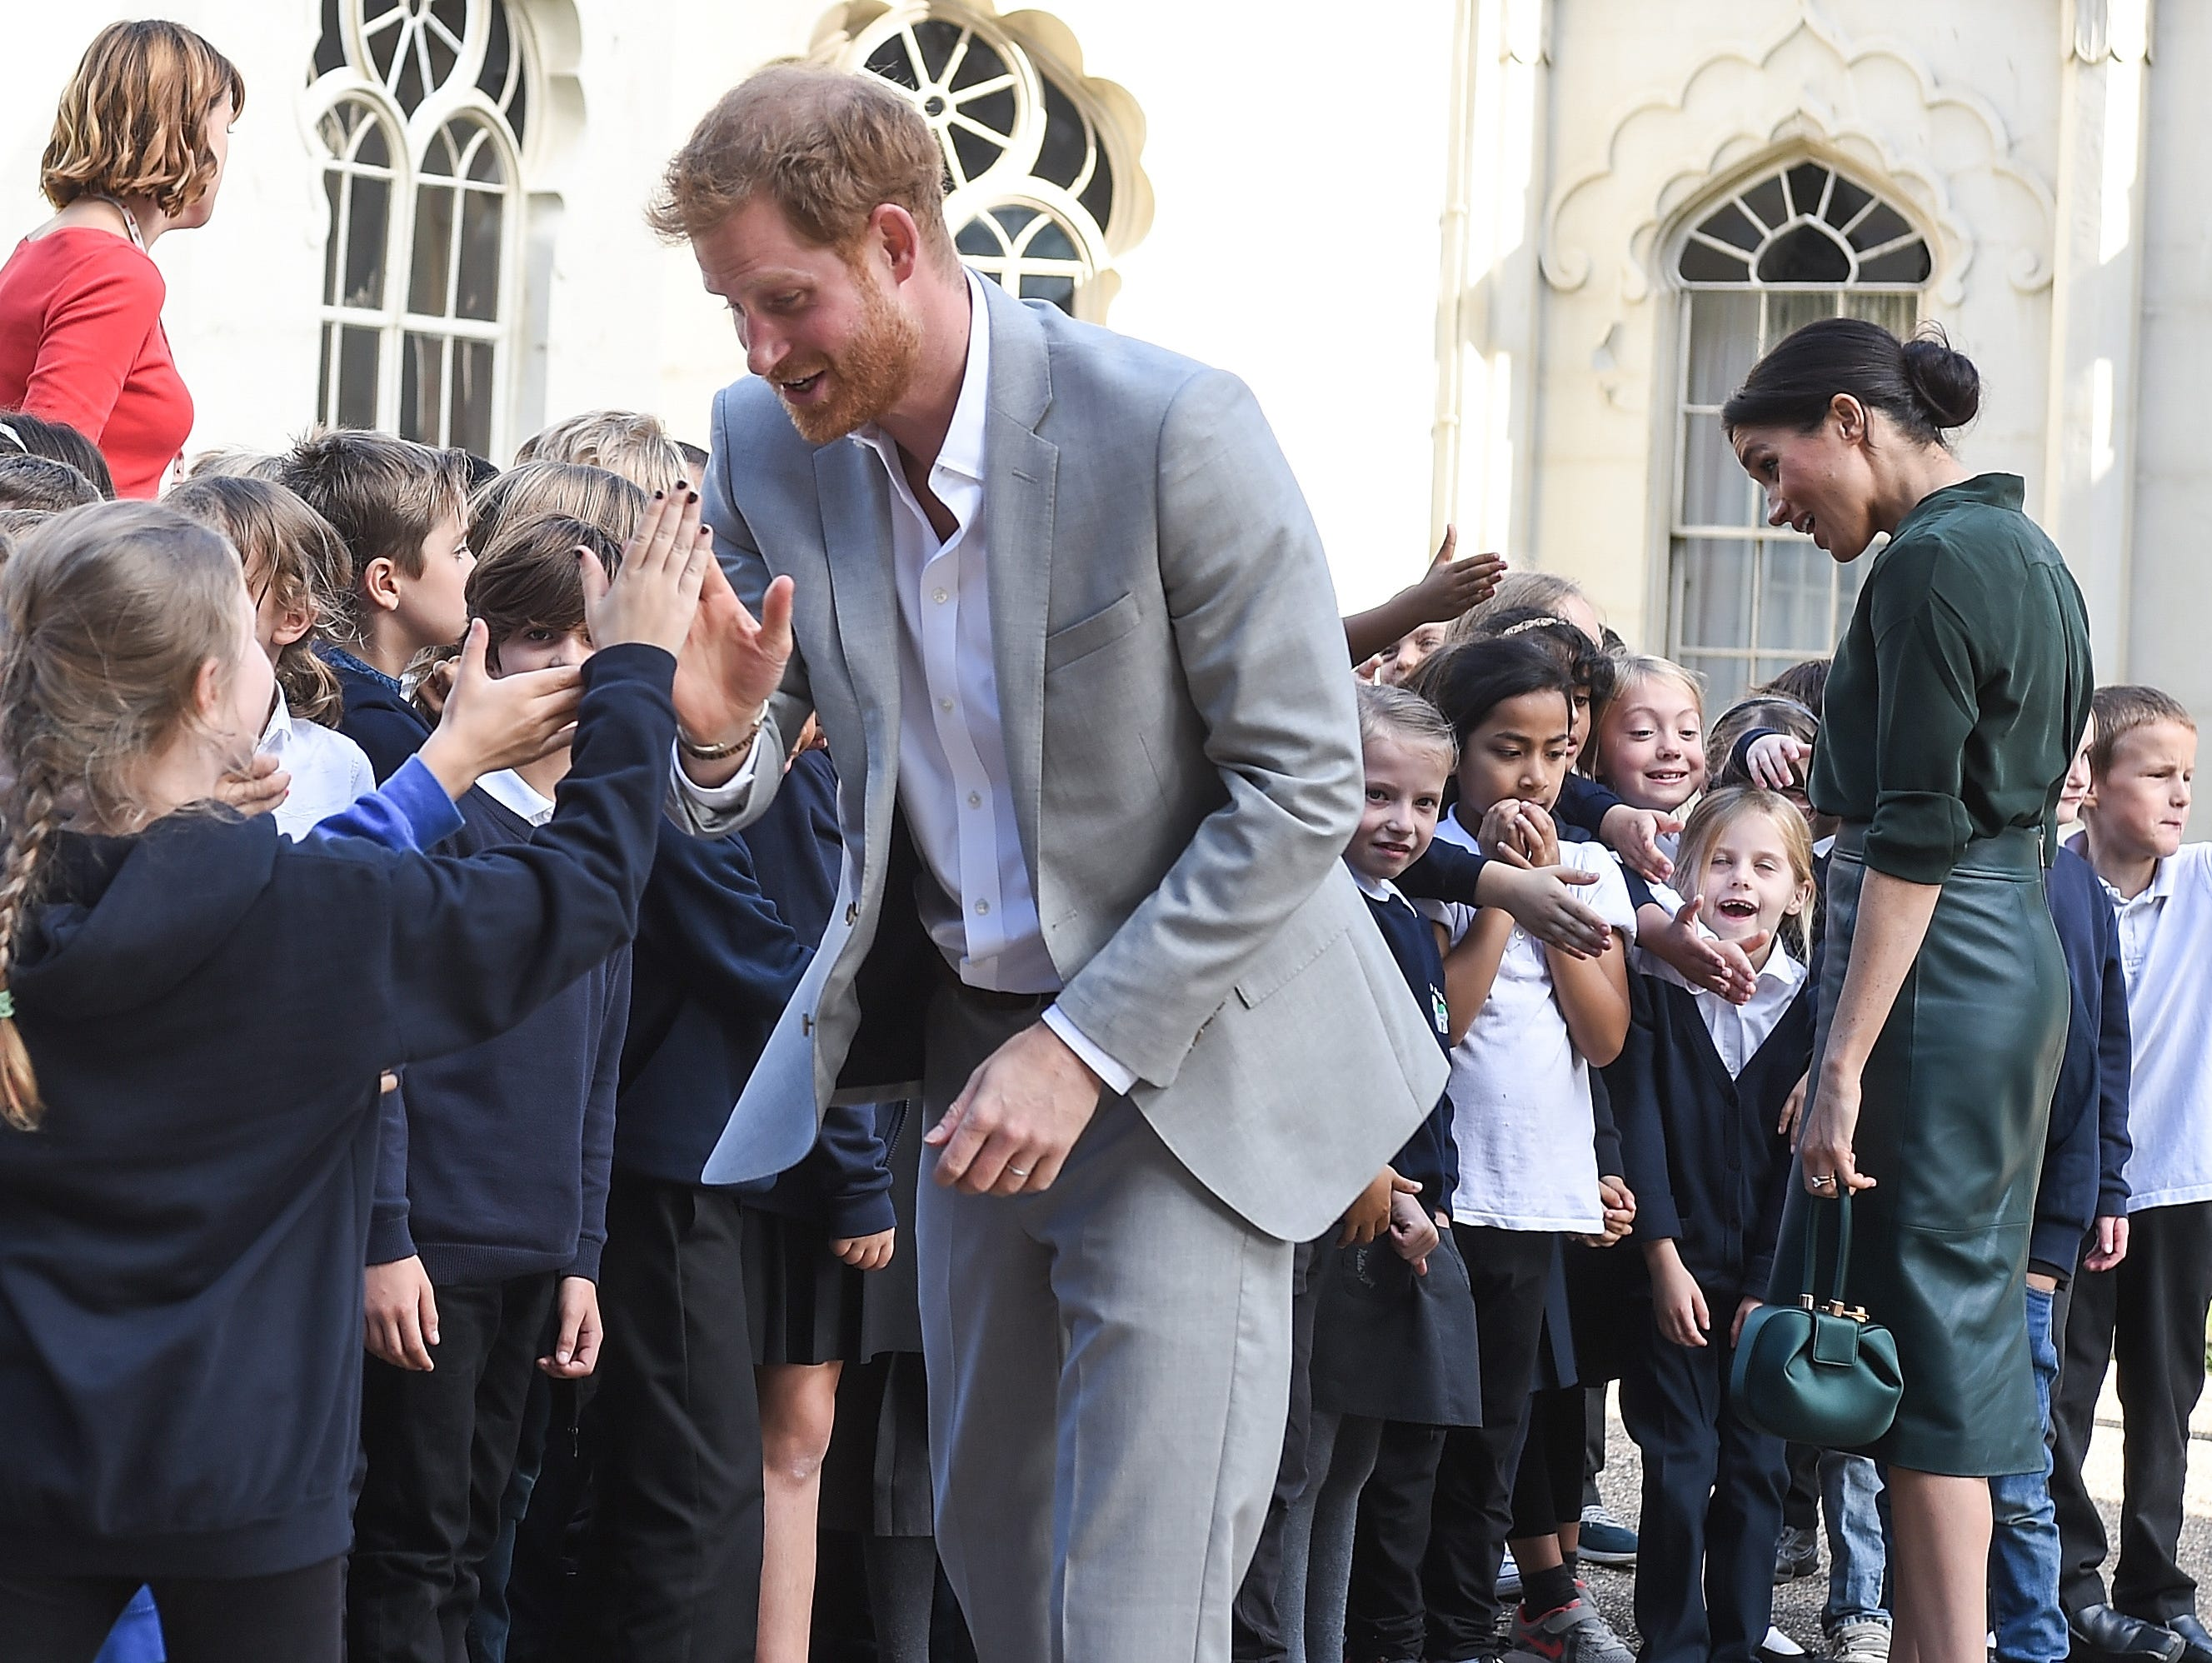 Watch When Prince William Is King, Meghan Markles Life Will Change In This Significant Way video